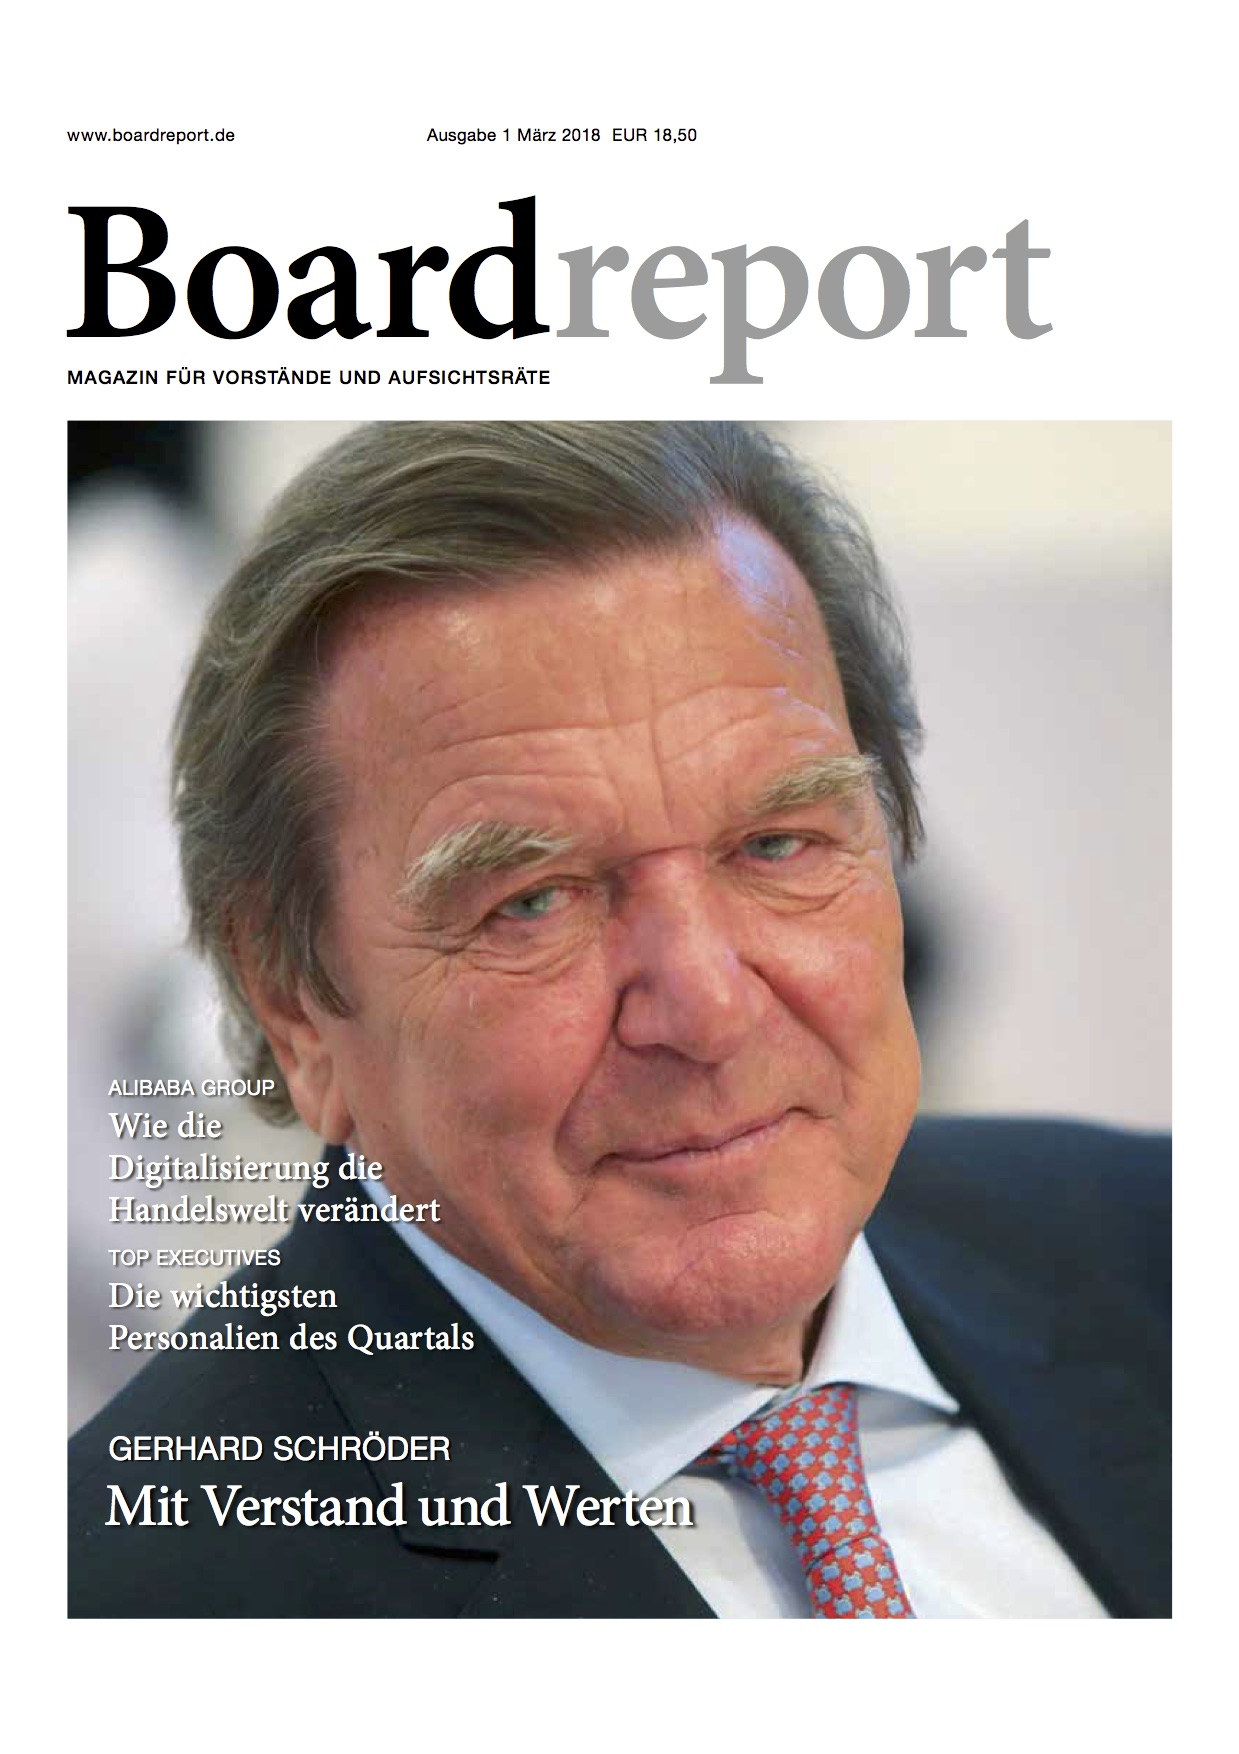 Boardreport 1 2018 Cover